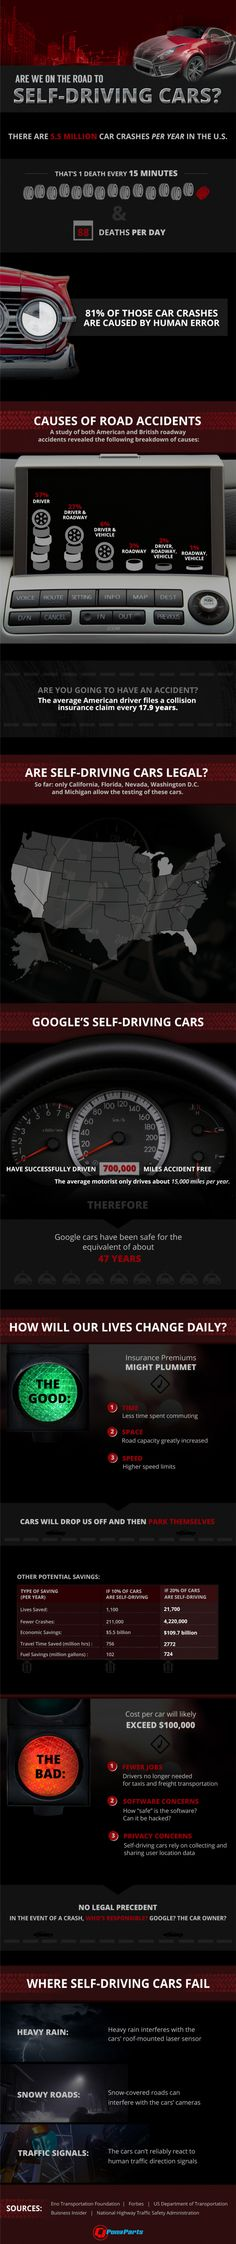 pros-cons-self-driving-cars-infographic.jpg